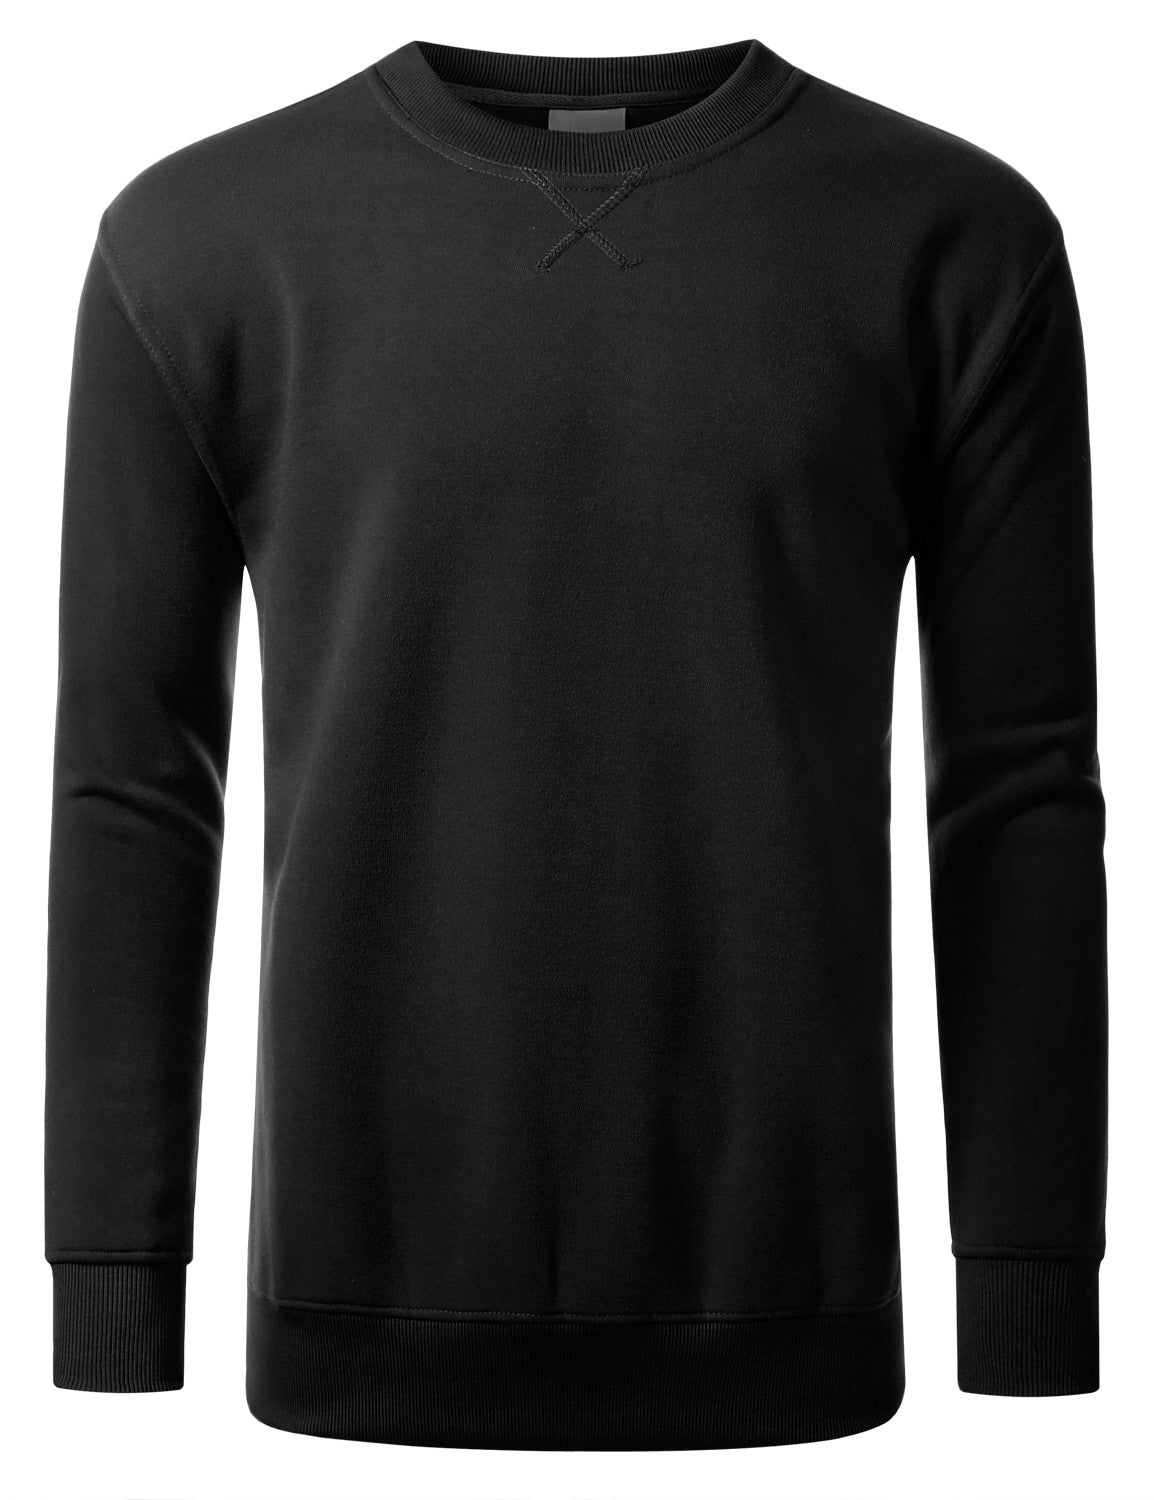 BLACK Basic Crewneck Sweatshirt-Various Colors - URBANCREWS